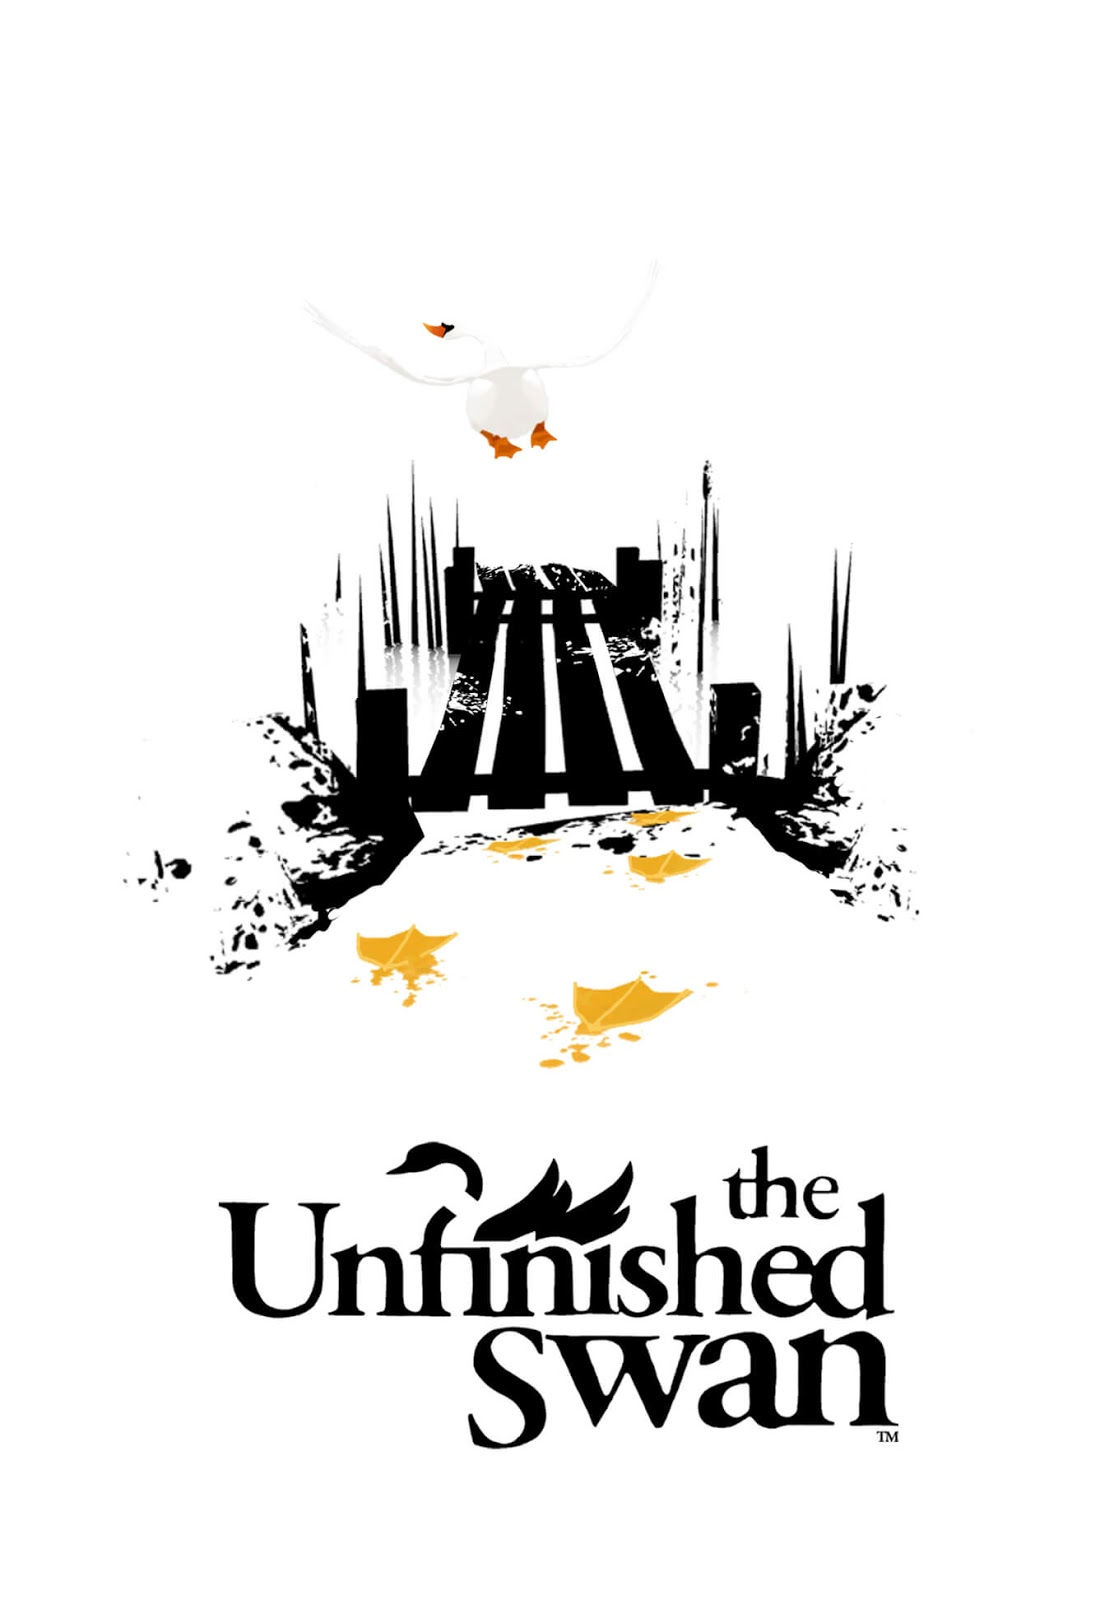 Preview of The Unfinished Swan game, Download The Unfinished Swan for PC, Download the latest The Unfinished Swan game update, Download The Unfinished Swan game for PC, Download The Unfinished Swan game FitGirl version, Download The Unfinished Swan game, Download the low volume game  The Unfinished Swan, The Unfinished Swan Game Review